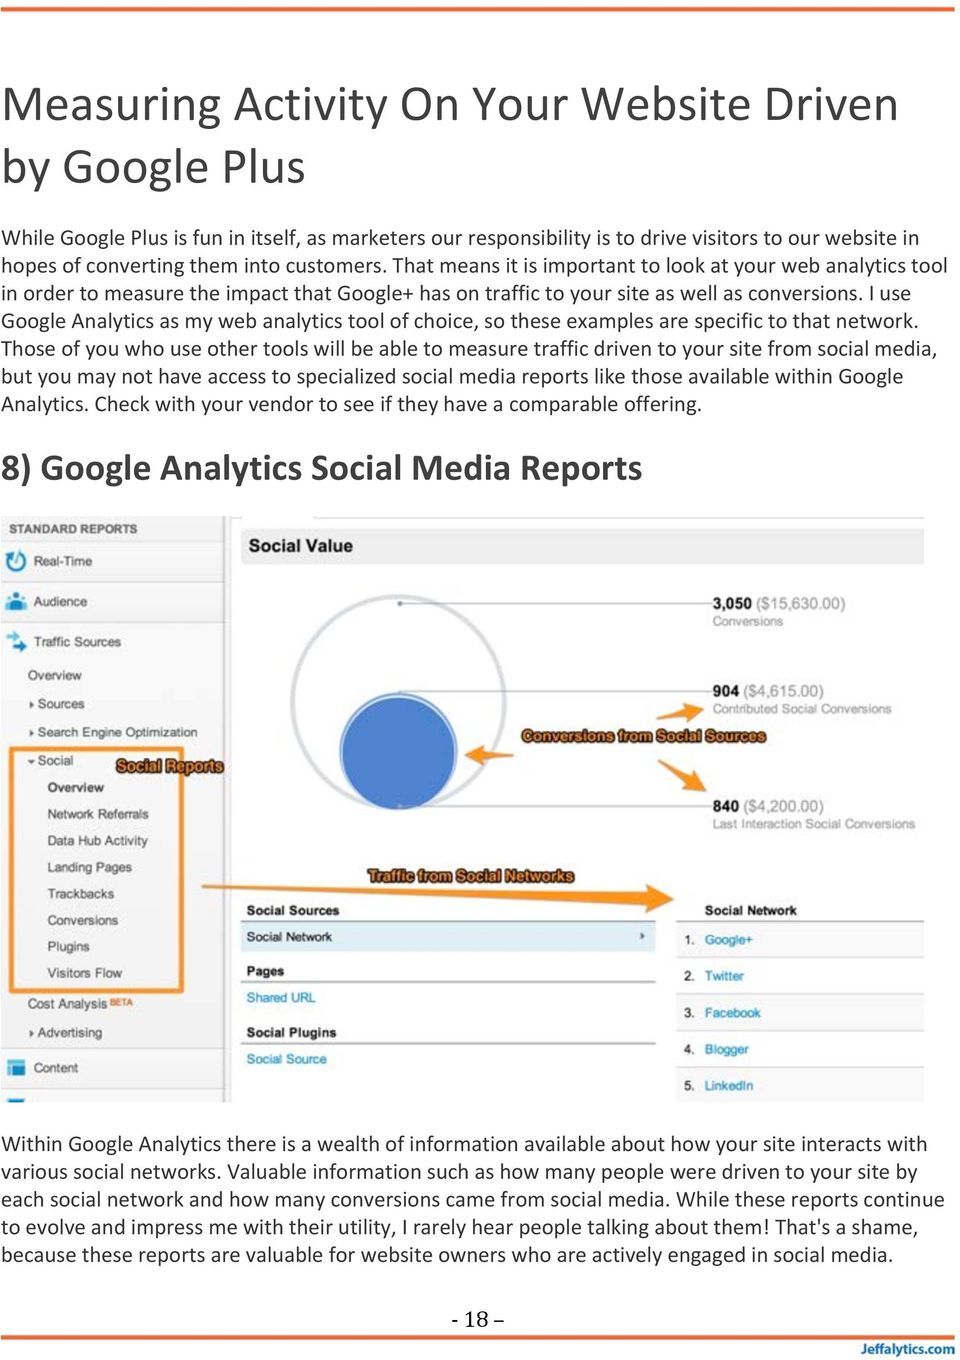 I use Google Analytics as my web analytics tool of choice, so these examples are specific to that network.